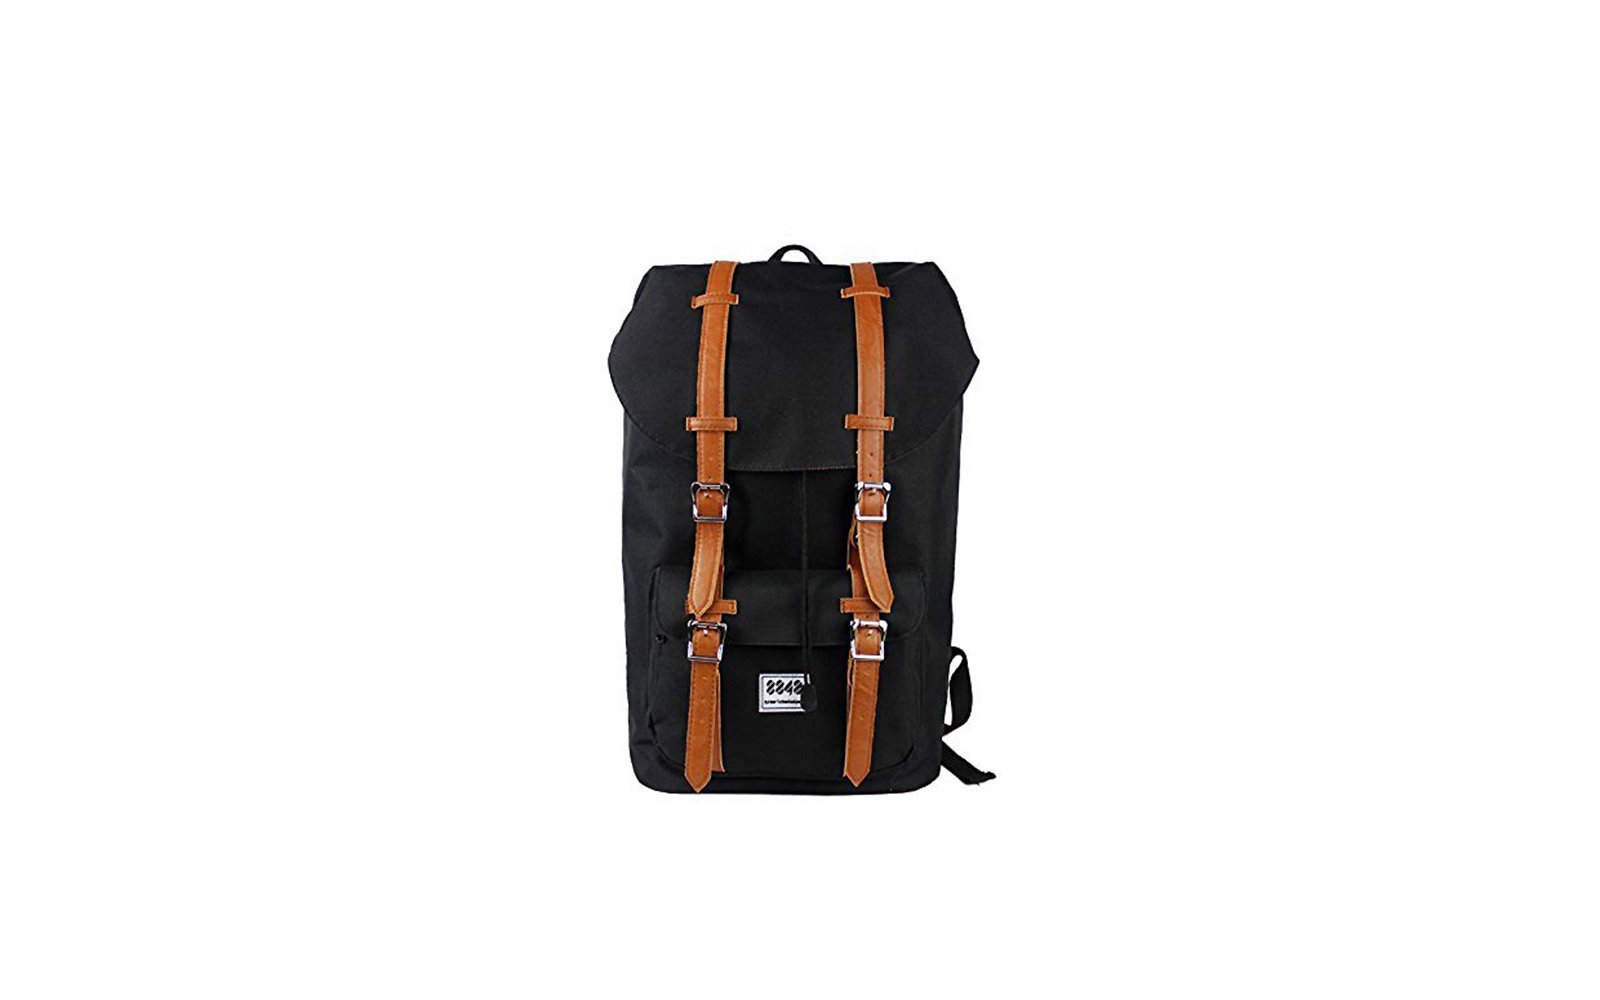 8848 Hiking Backpack With Waterproof Material